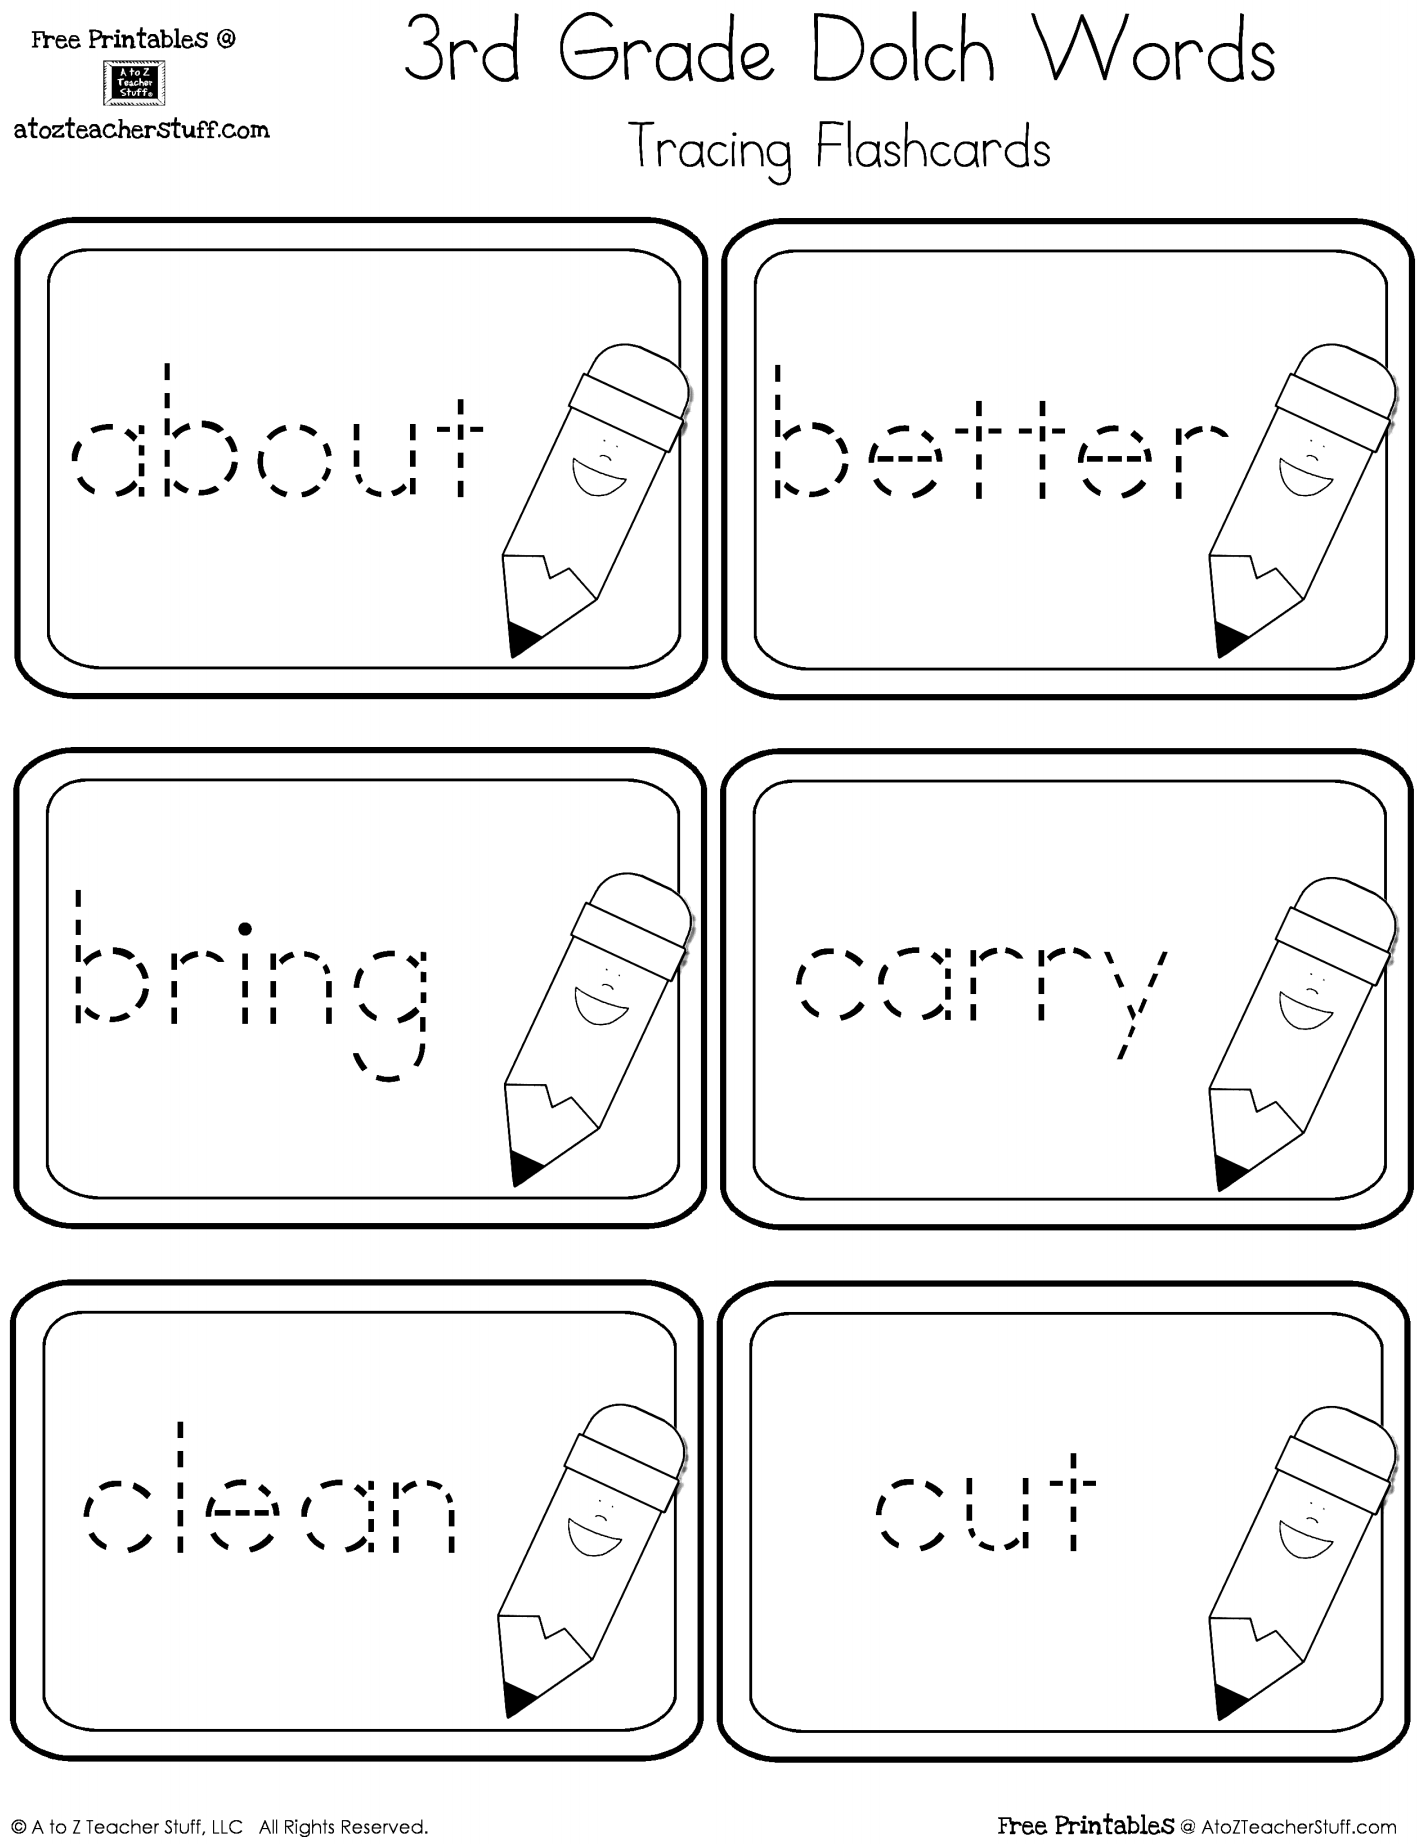 Third Grade Dolch Sight Words Tracing Flashcards